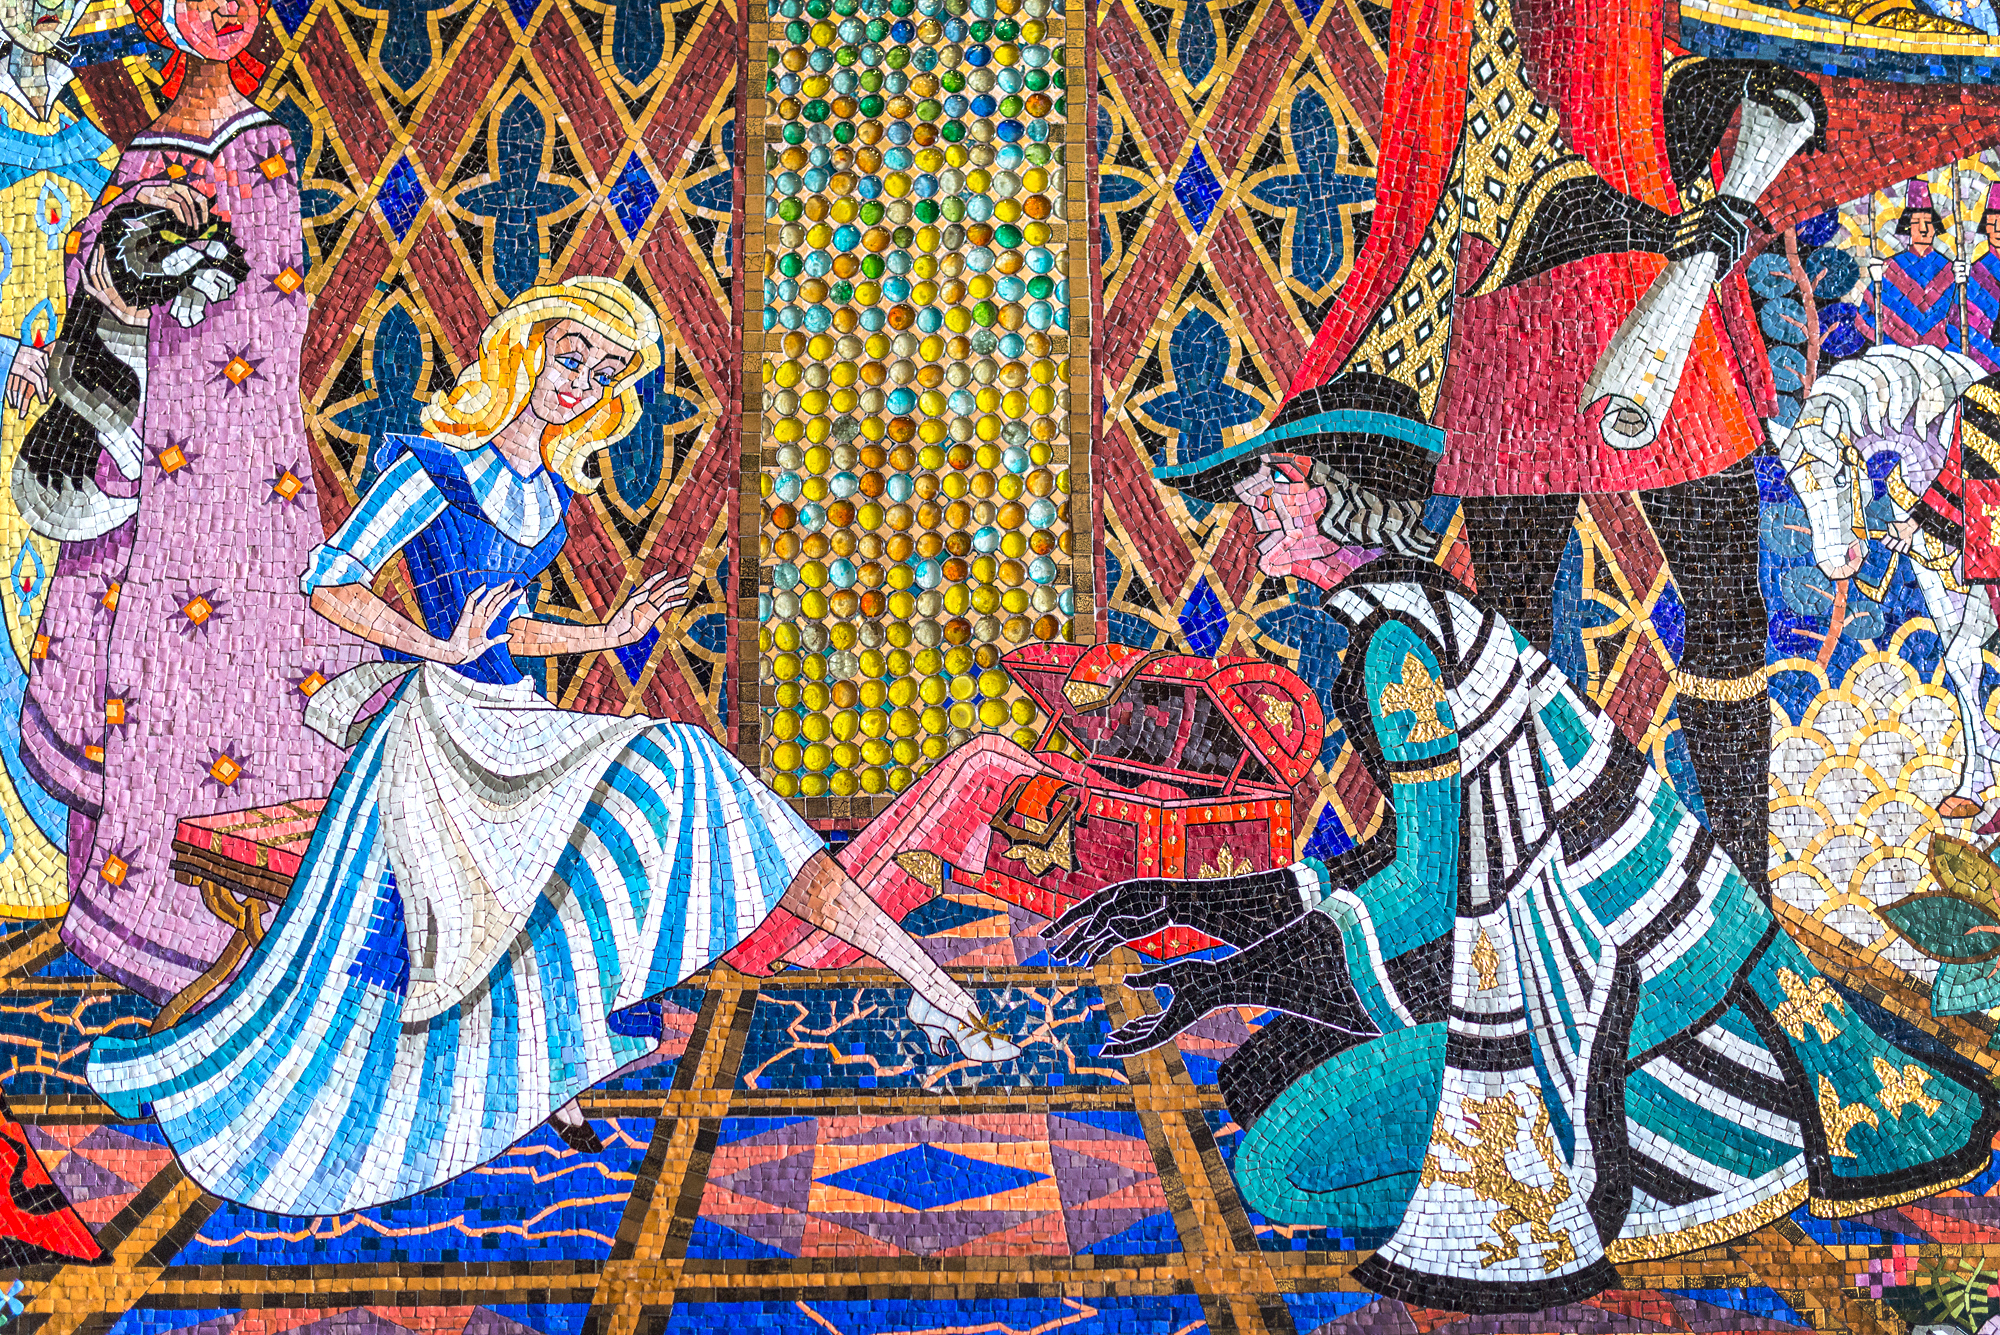 Cinderella Castle Mosaic Magic Kingdom